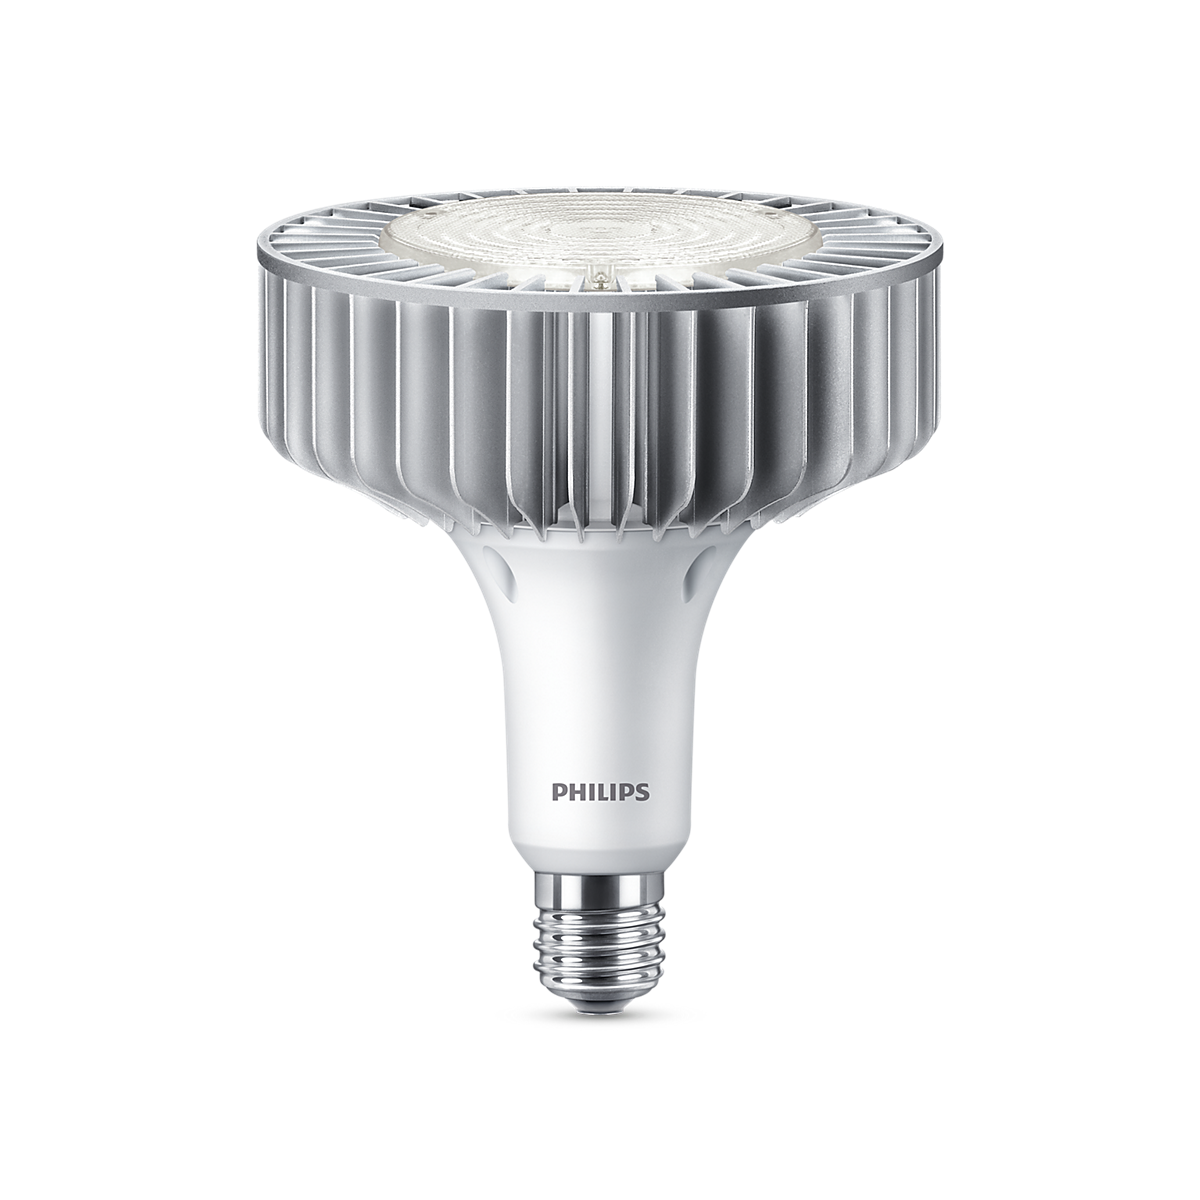 TrueForce LED Industri og detaljhandel for strømnett (Highbay – HPI/SON/HPL)